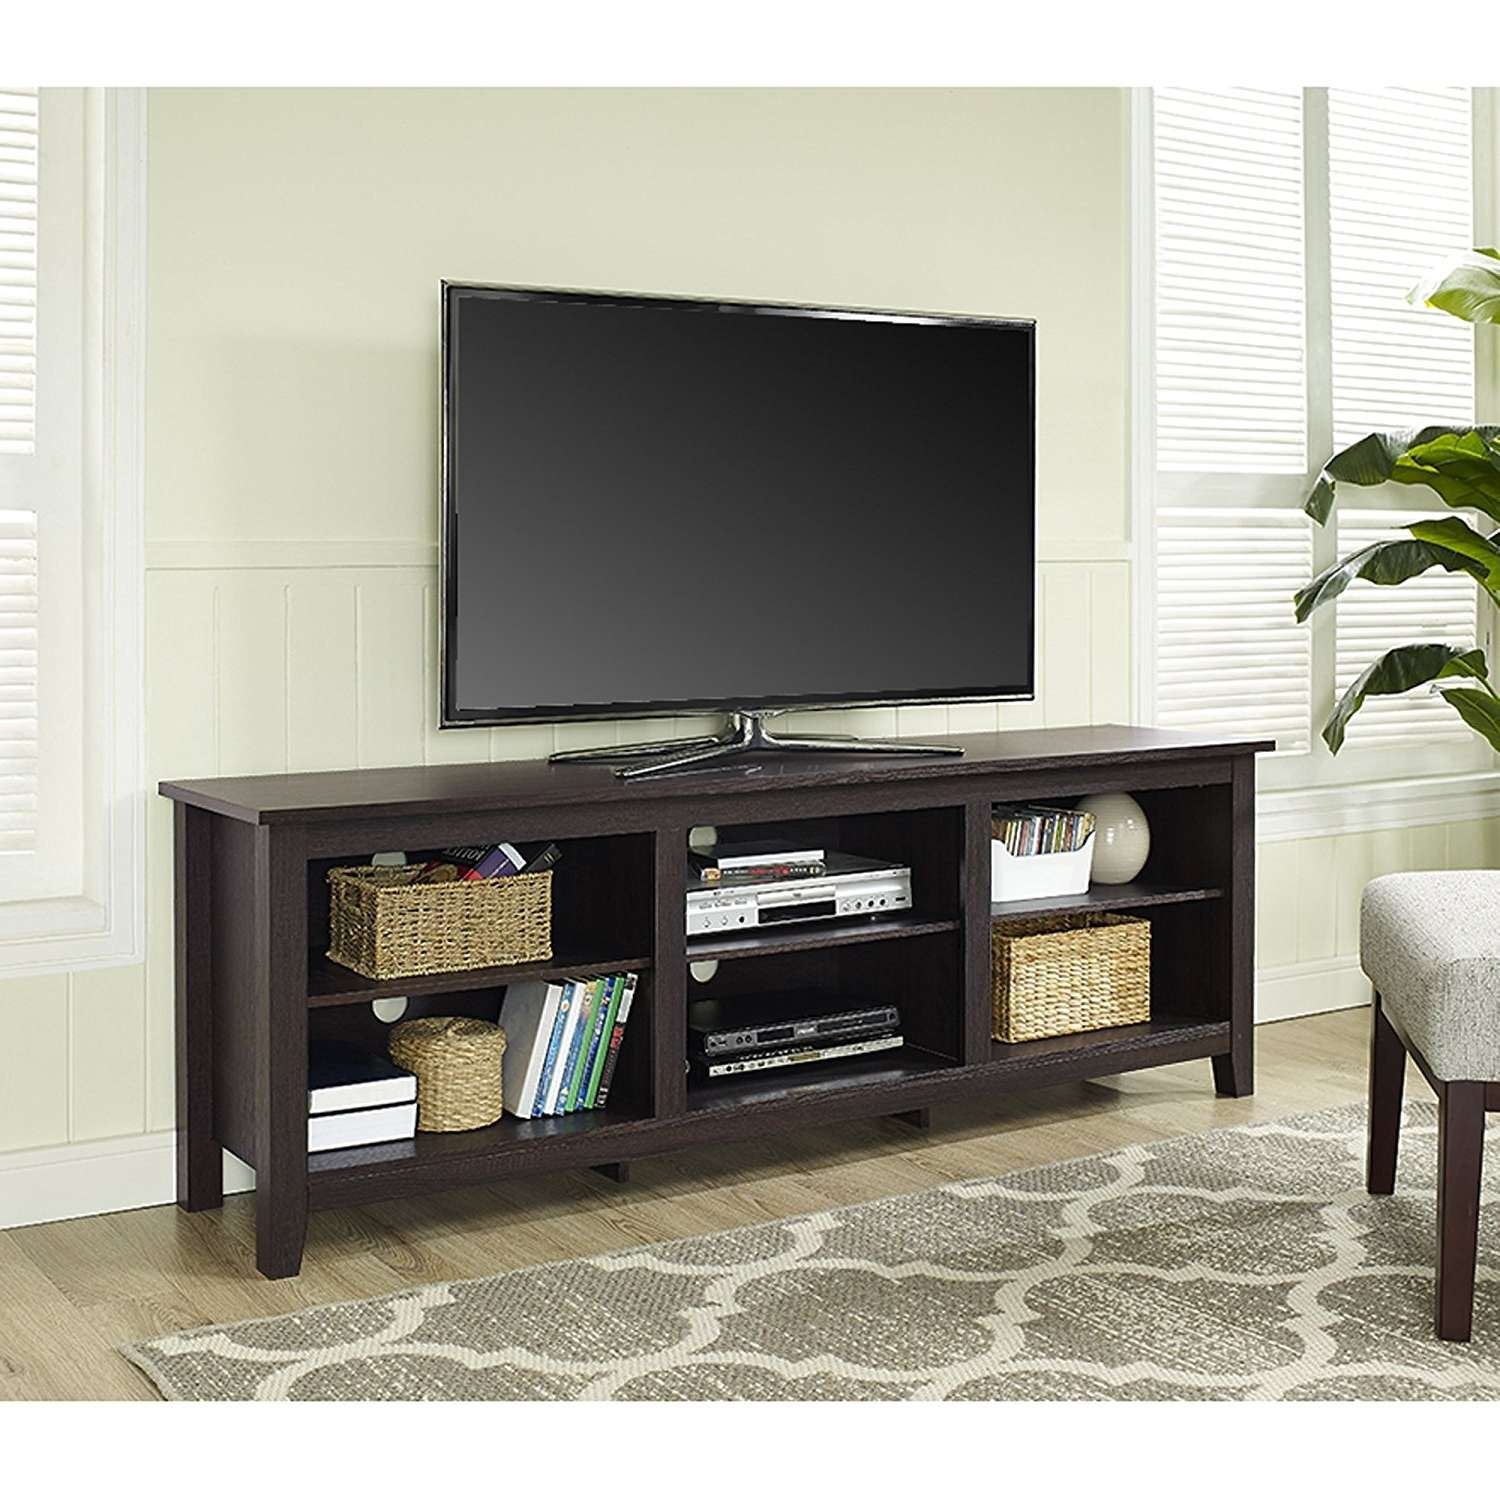 Console Tables : Extra Long Tv Stand Awe Images About Stylish Within Extra Long Tv Stands (View 6 of 20)